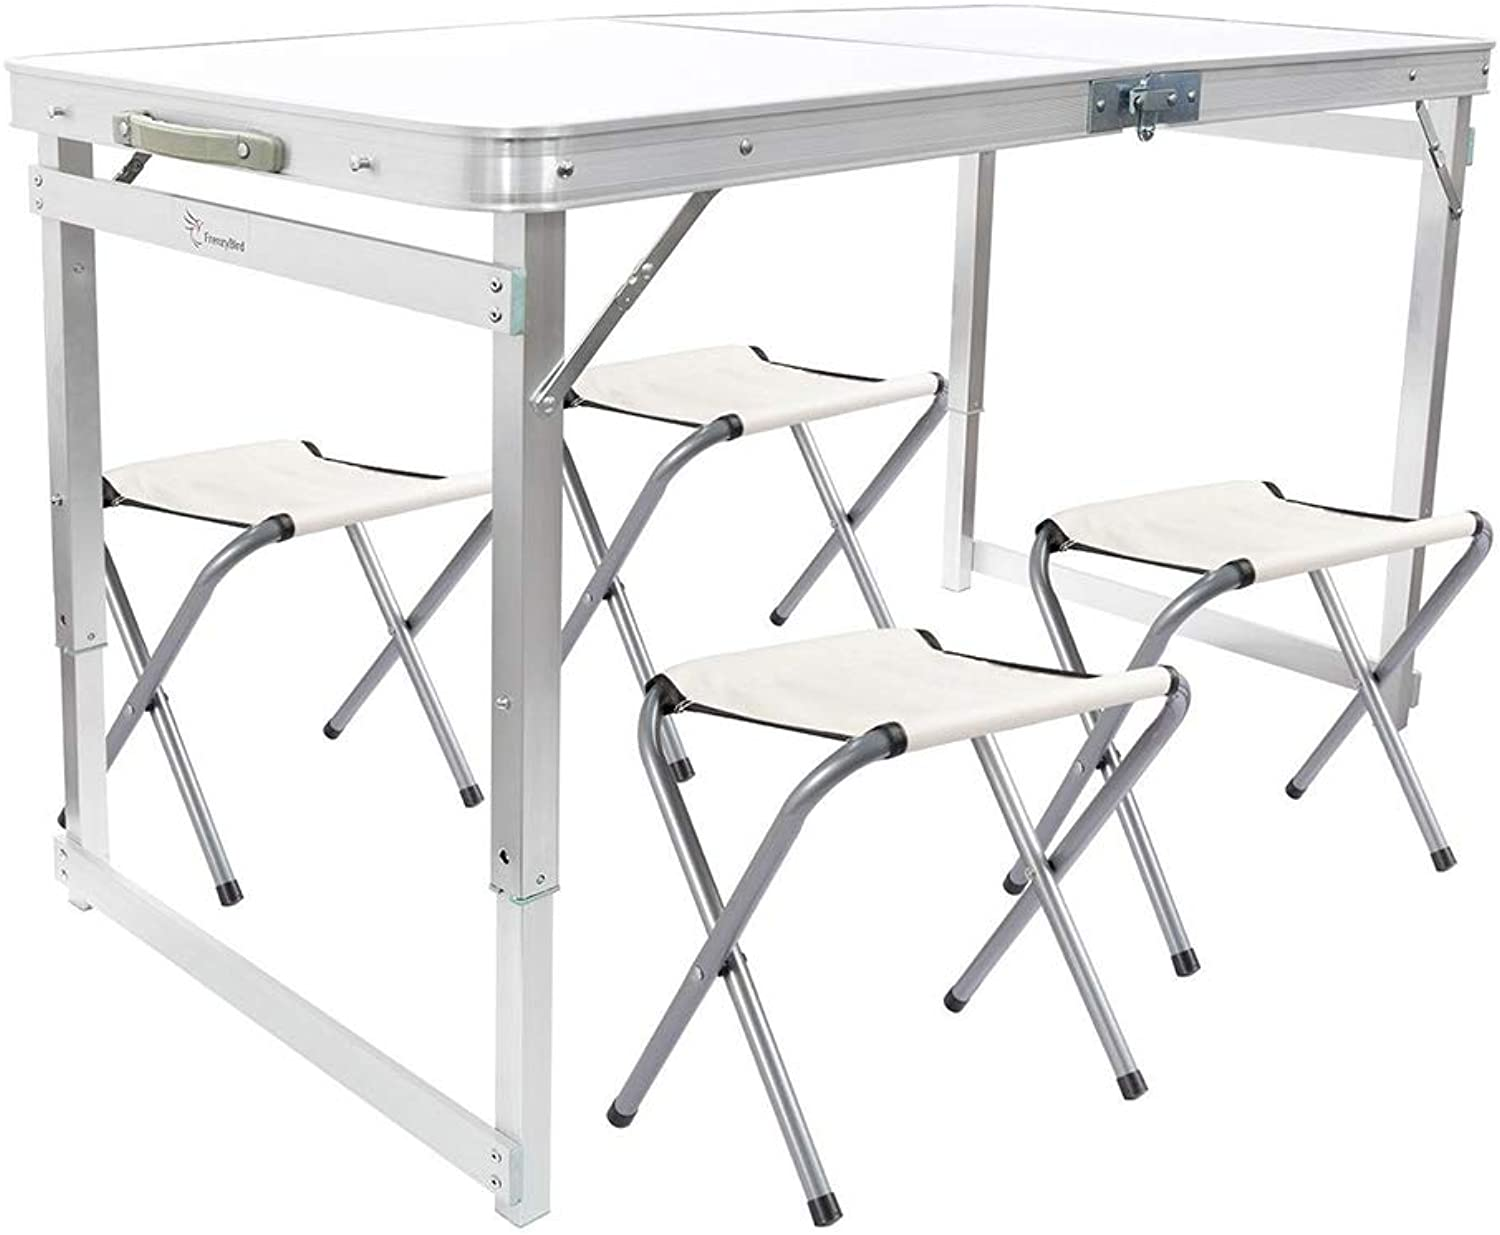 4Person Folding Picnic Table with 4 Chairs, Height